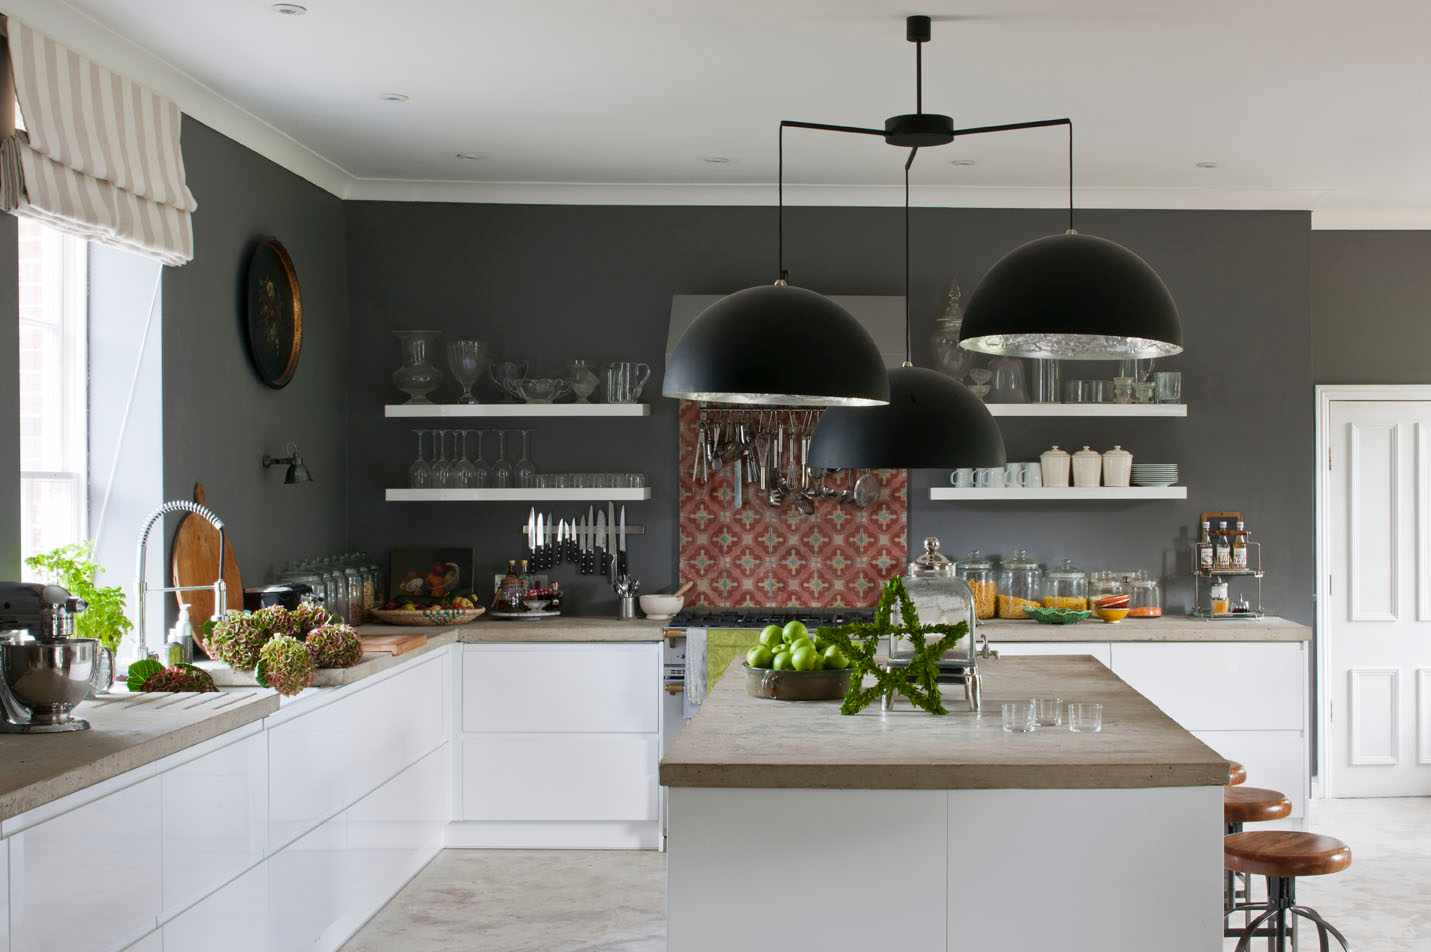 Spanish tiles from the Reclaimed Tile Company add interest to this kitchen